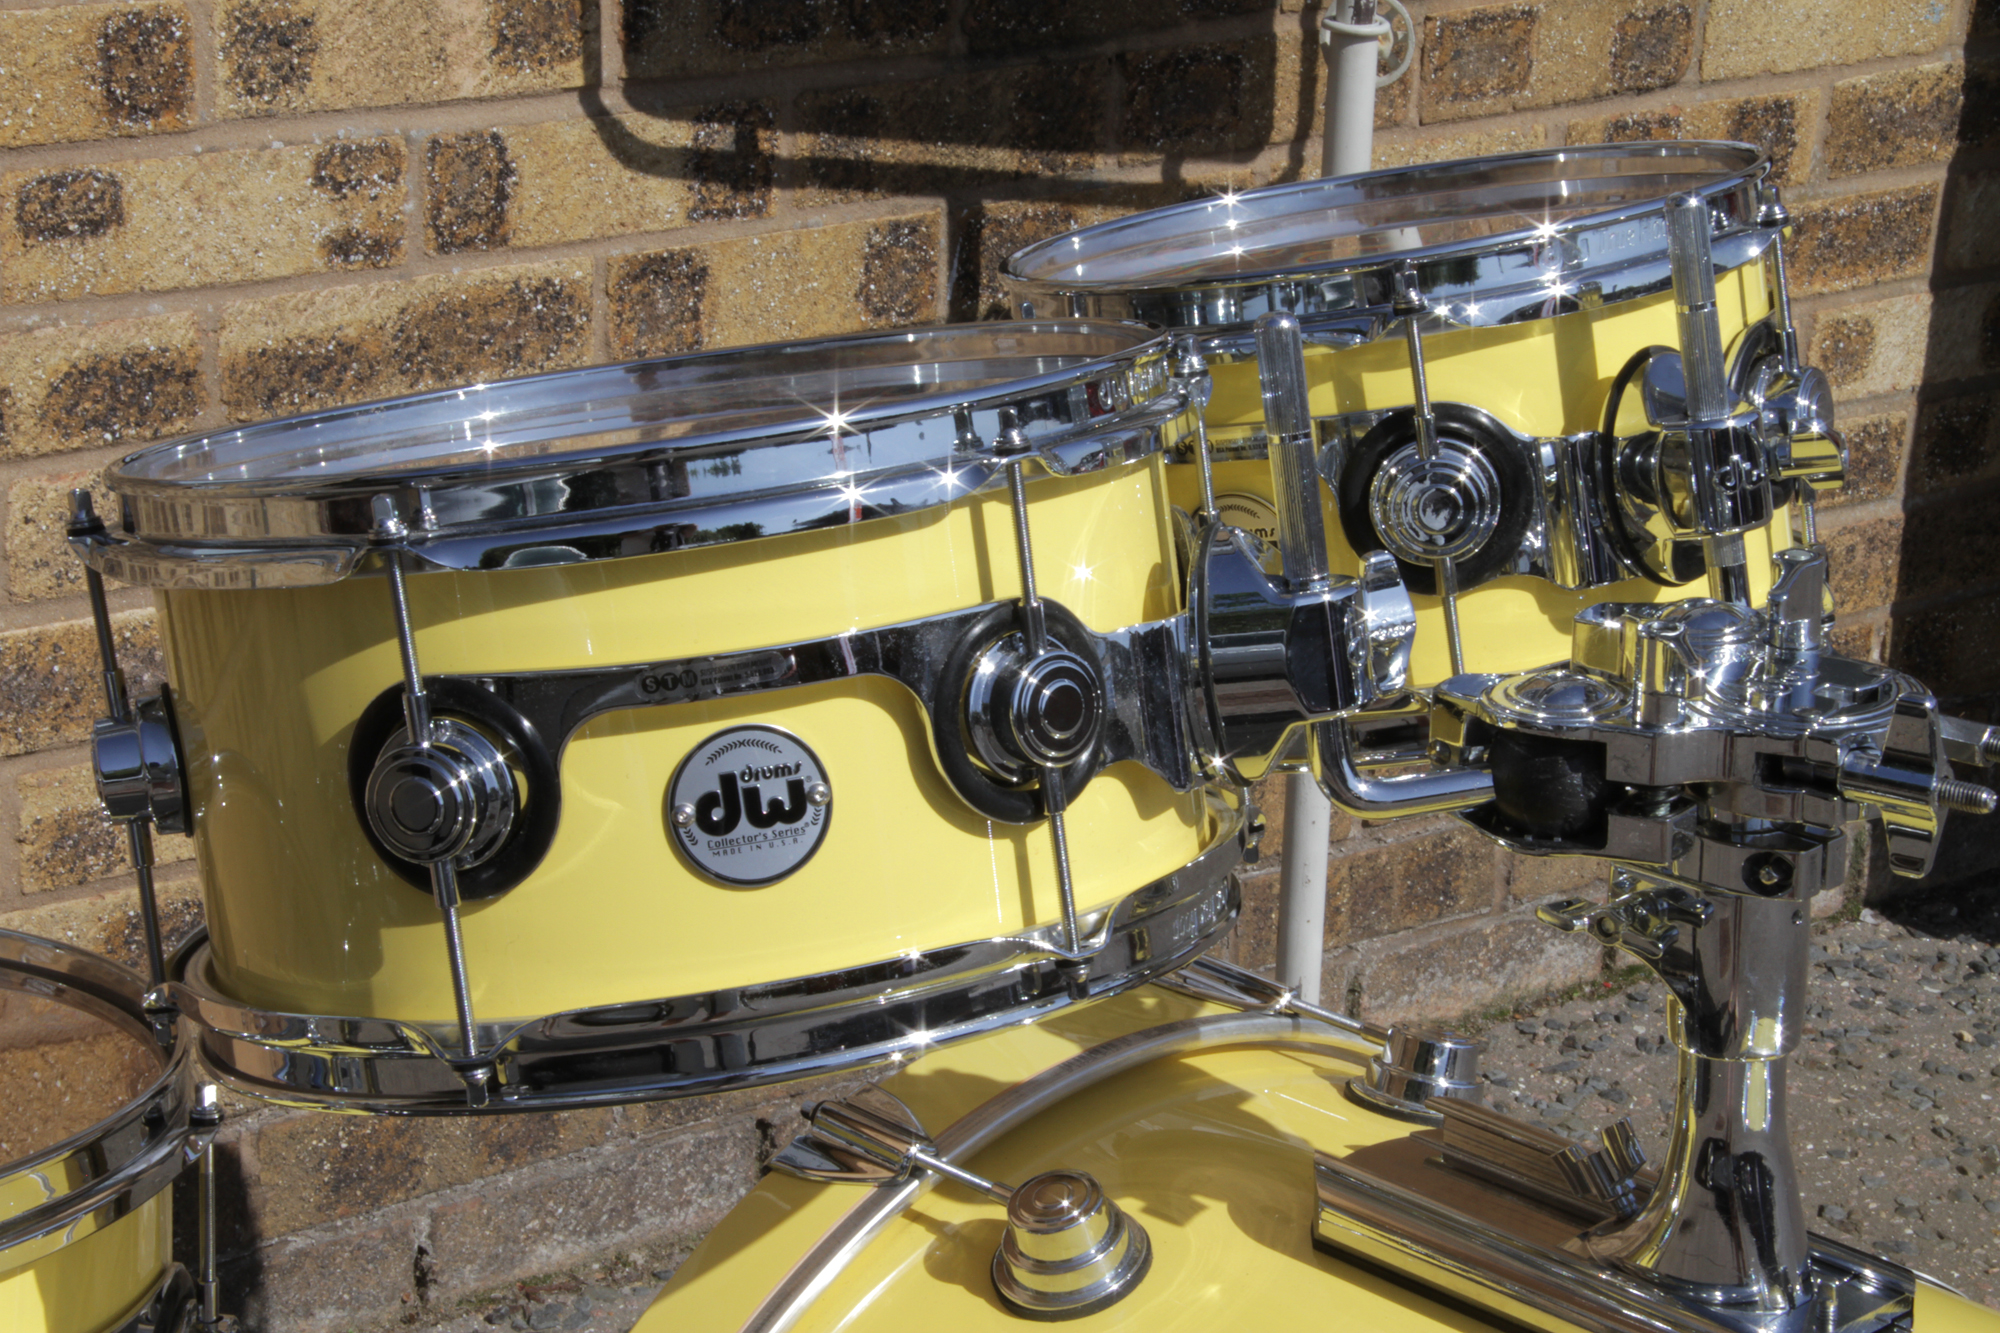 acoustic drum kits pre owned dw collectors maple vlt 22 39 39 4 piece shell pack canary yellow. Black Bedroom Furniture Sets. Home Design Ideas